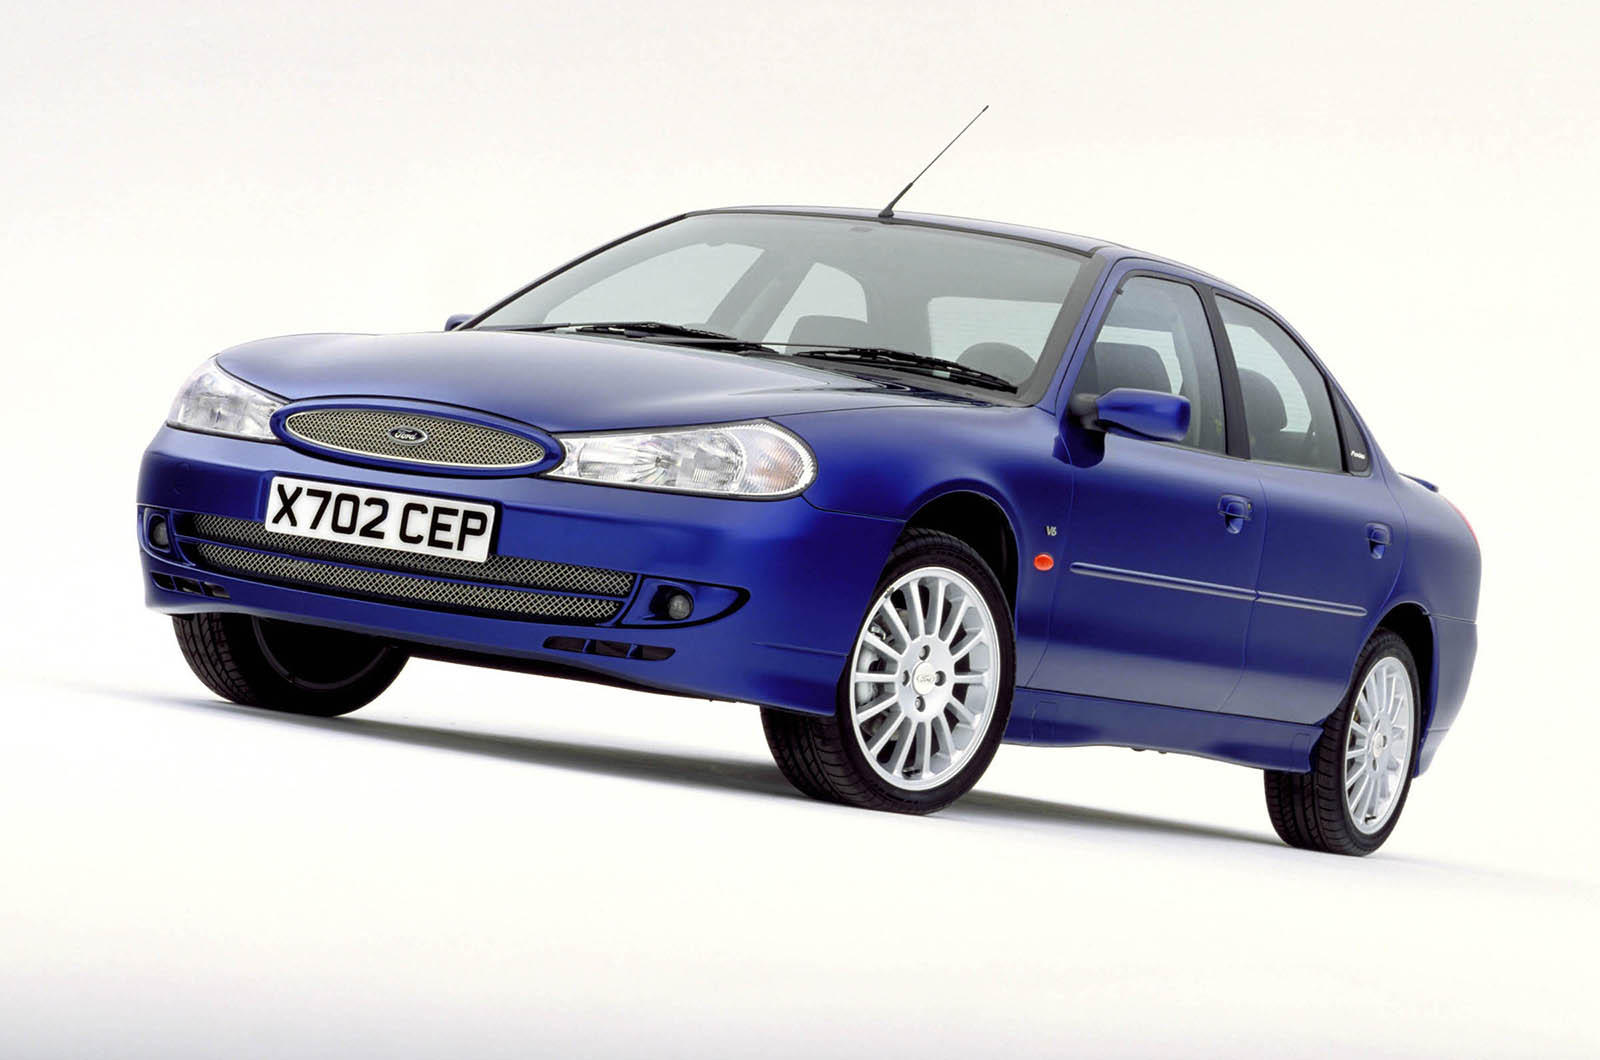 Ford Mondeo - Istorie - Ford Mondeo - Istorie